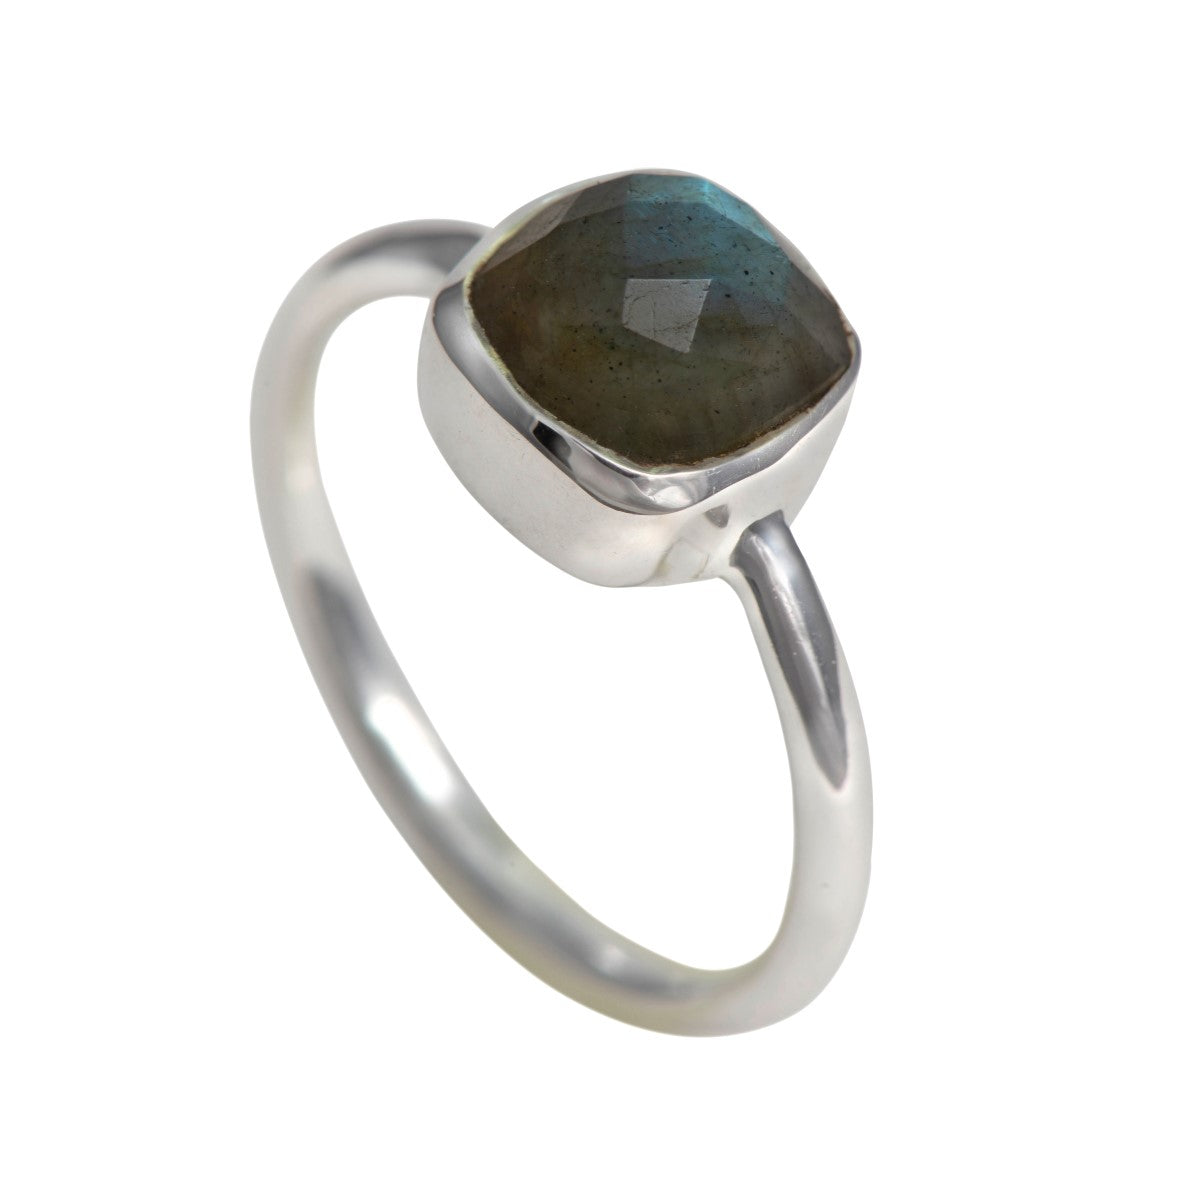 Faceted Square Cut Natural Gemstone Sterling Silver Solitaire Ring - Labradorite